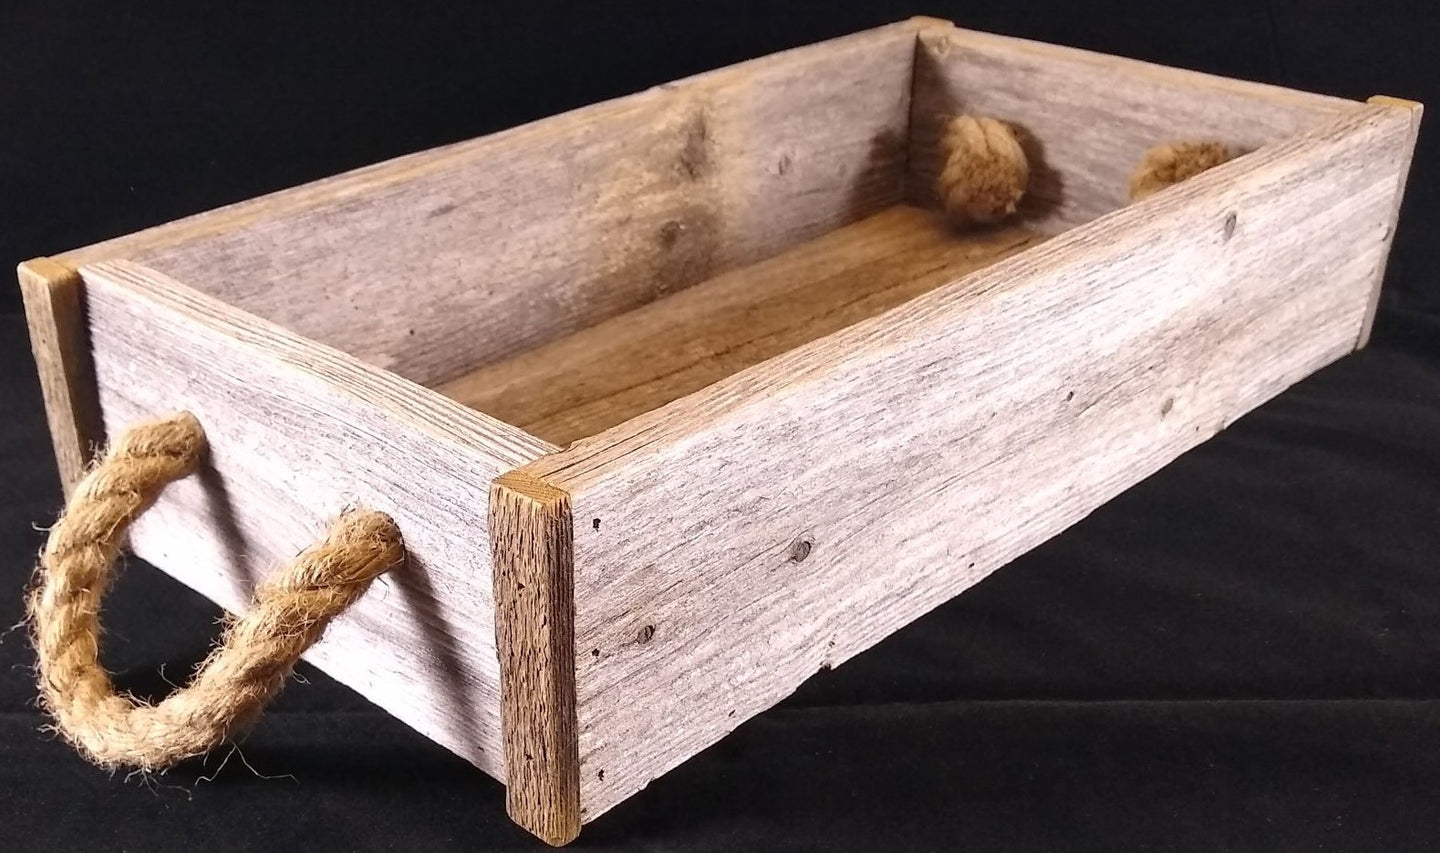 Tray - Rustic Wood Tray Made with Reclaimed Wood and Rope Handles